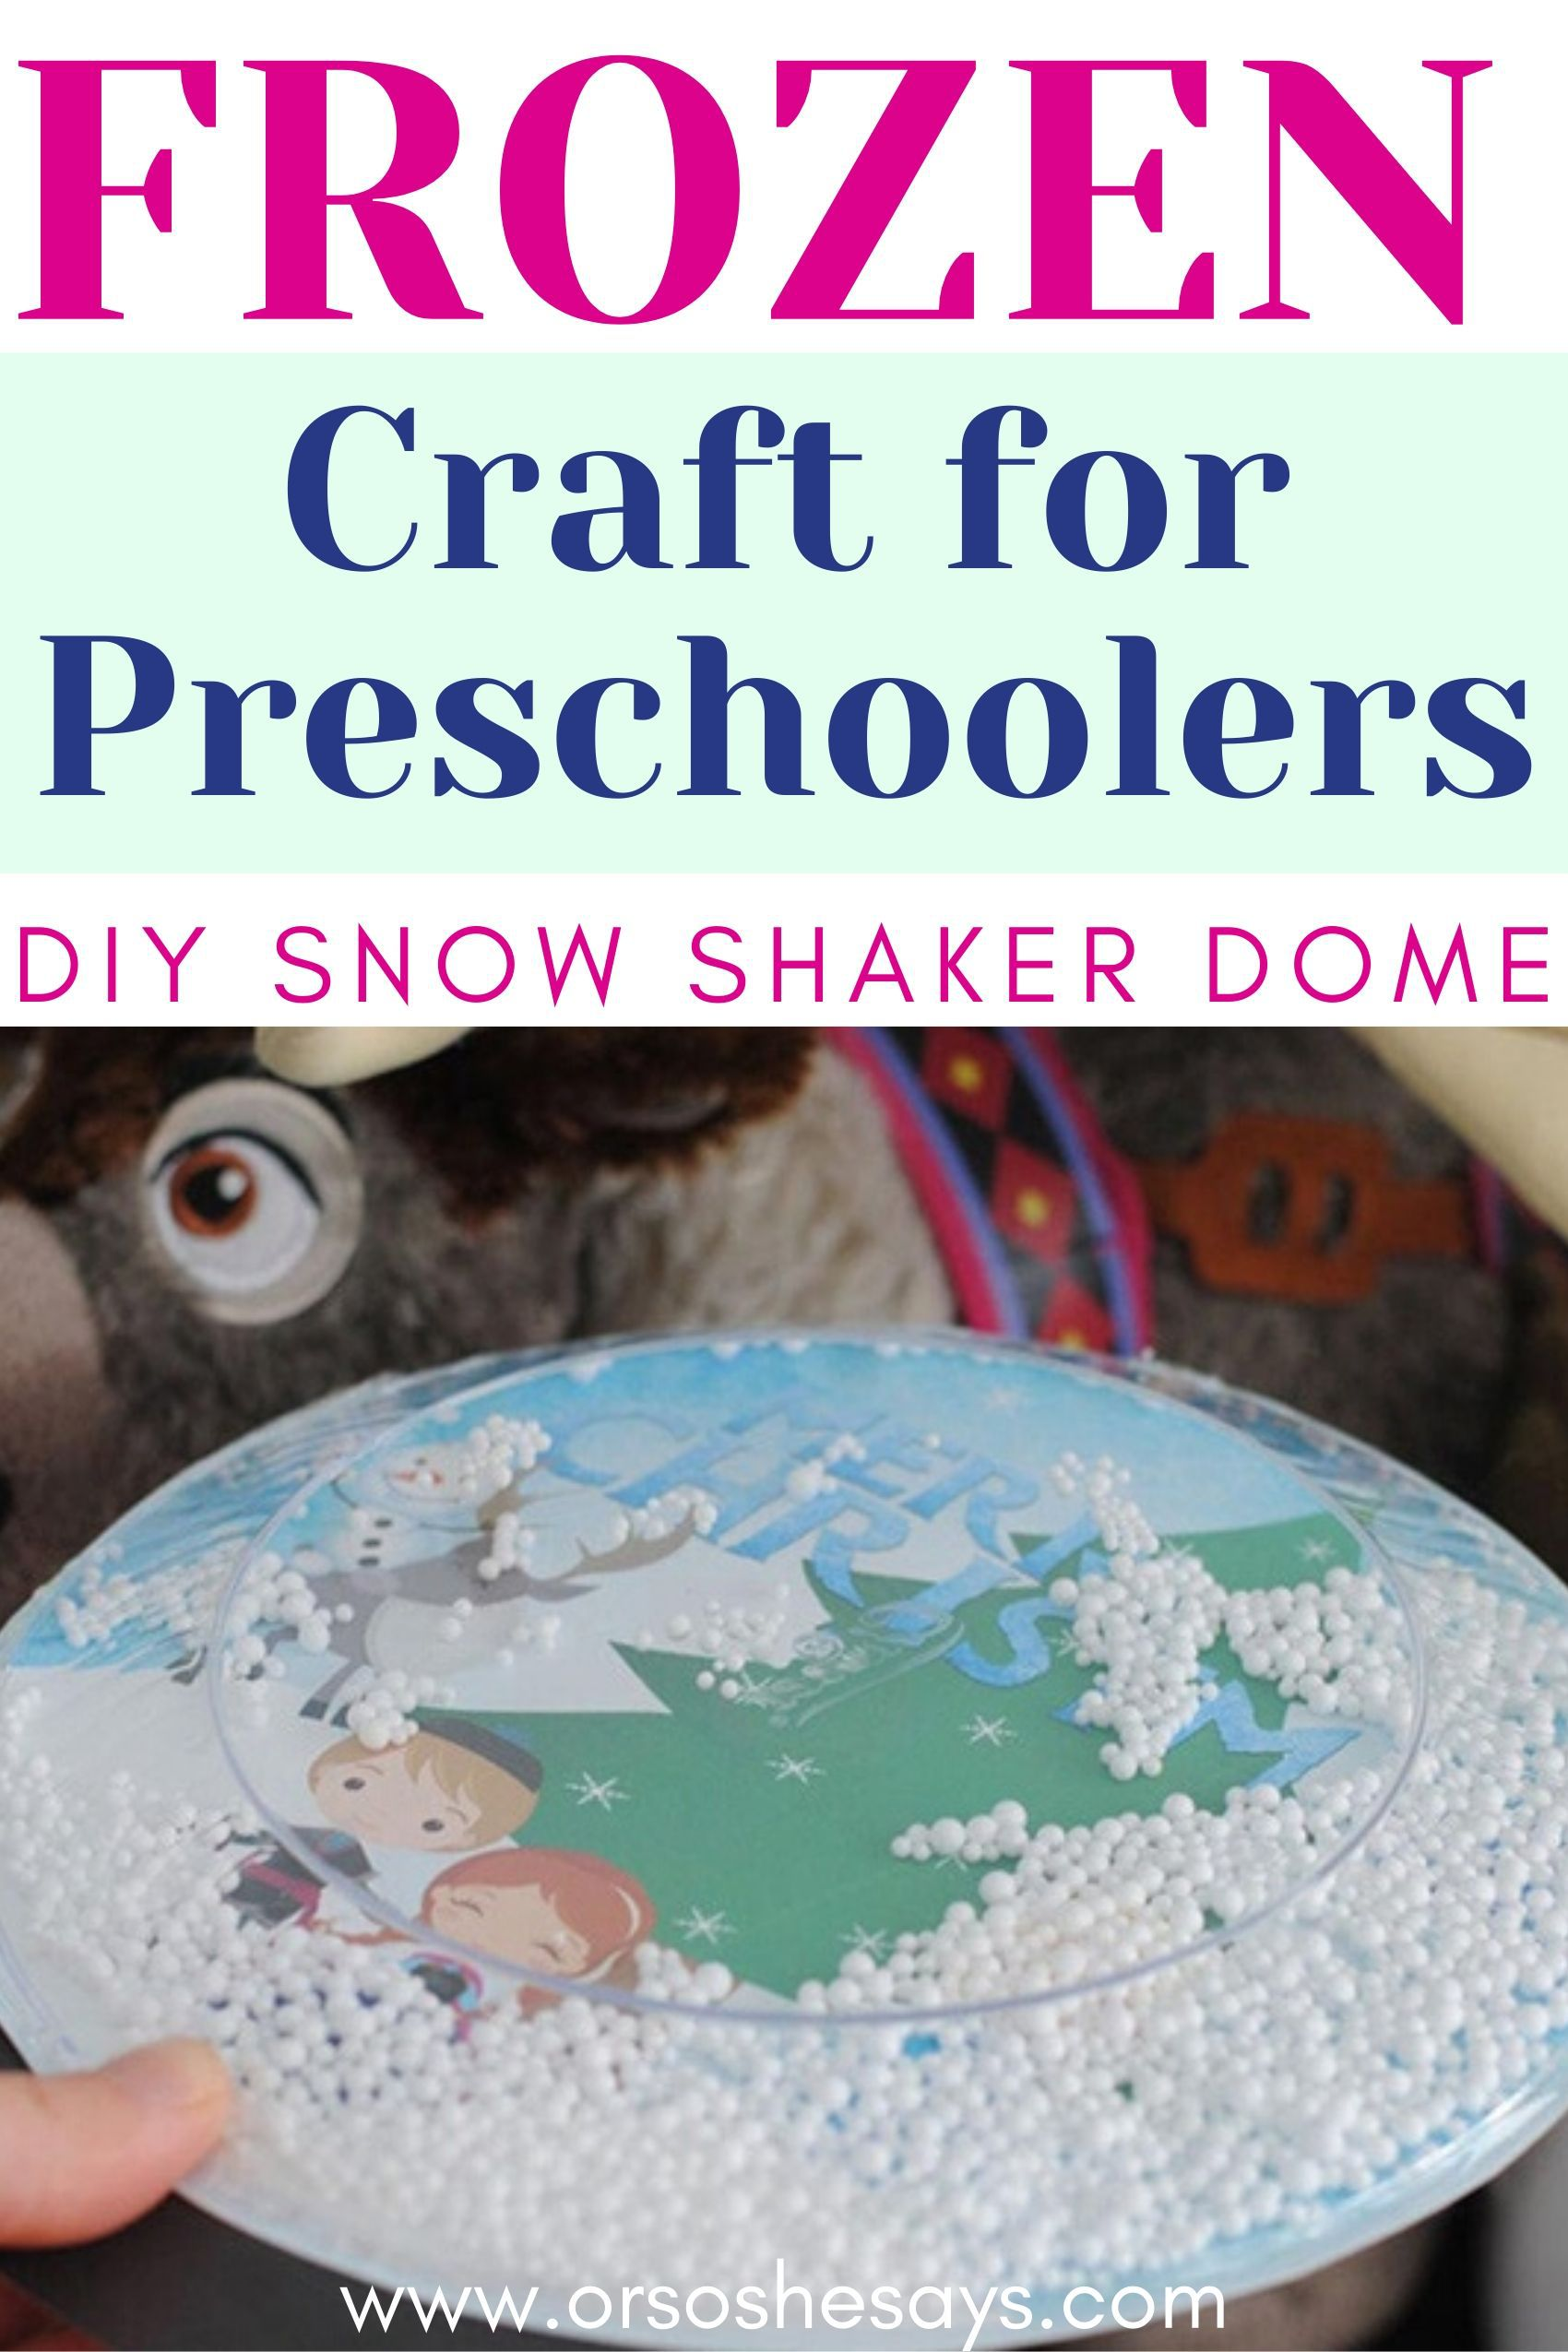 Frozen craft for preschoolers